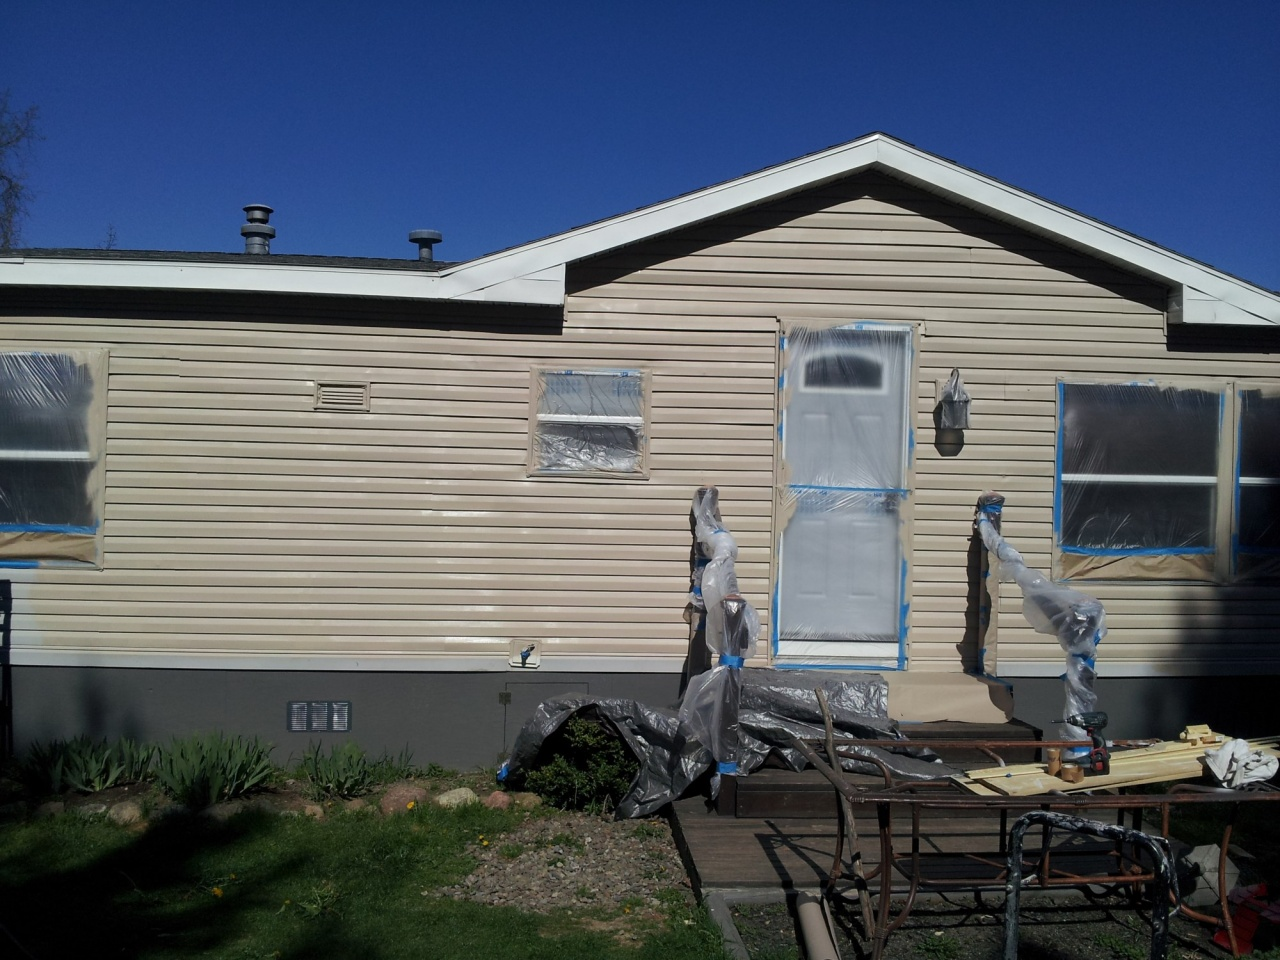 Painting Vinyl Siding Pros And Cons — Equalmarriagefl Vinyl ... on painting rv walls, before and after painting knotty pine walls, interior vinyl paneling for walls,